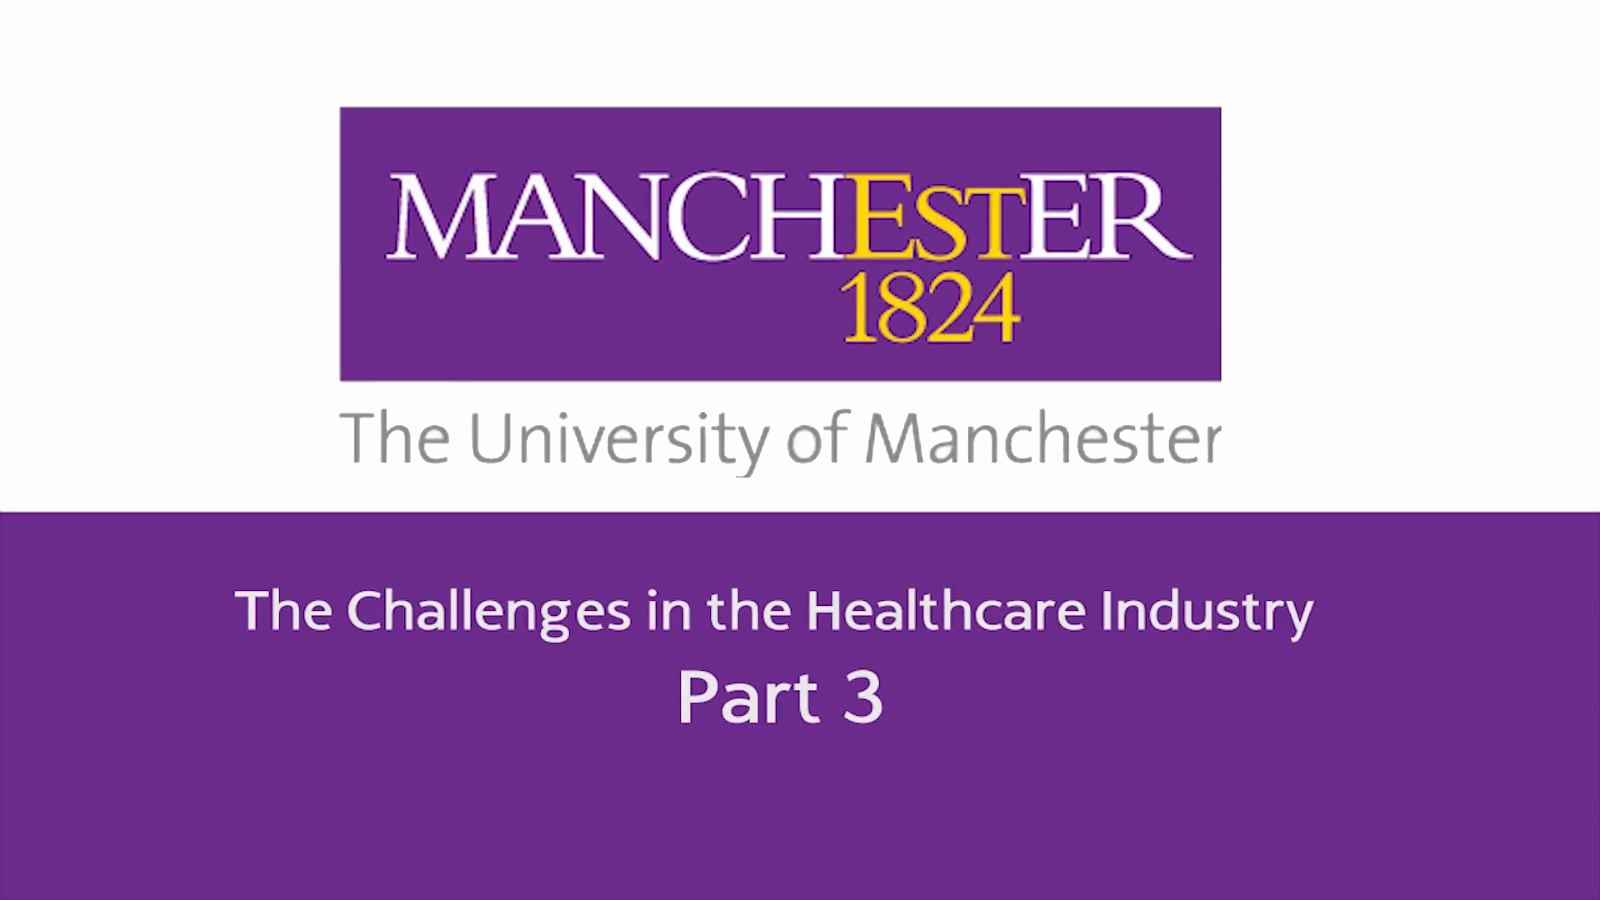 The Challenges in the Healthcare Industry - Part 3